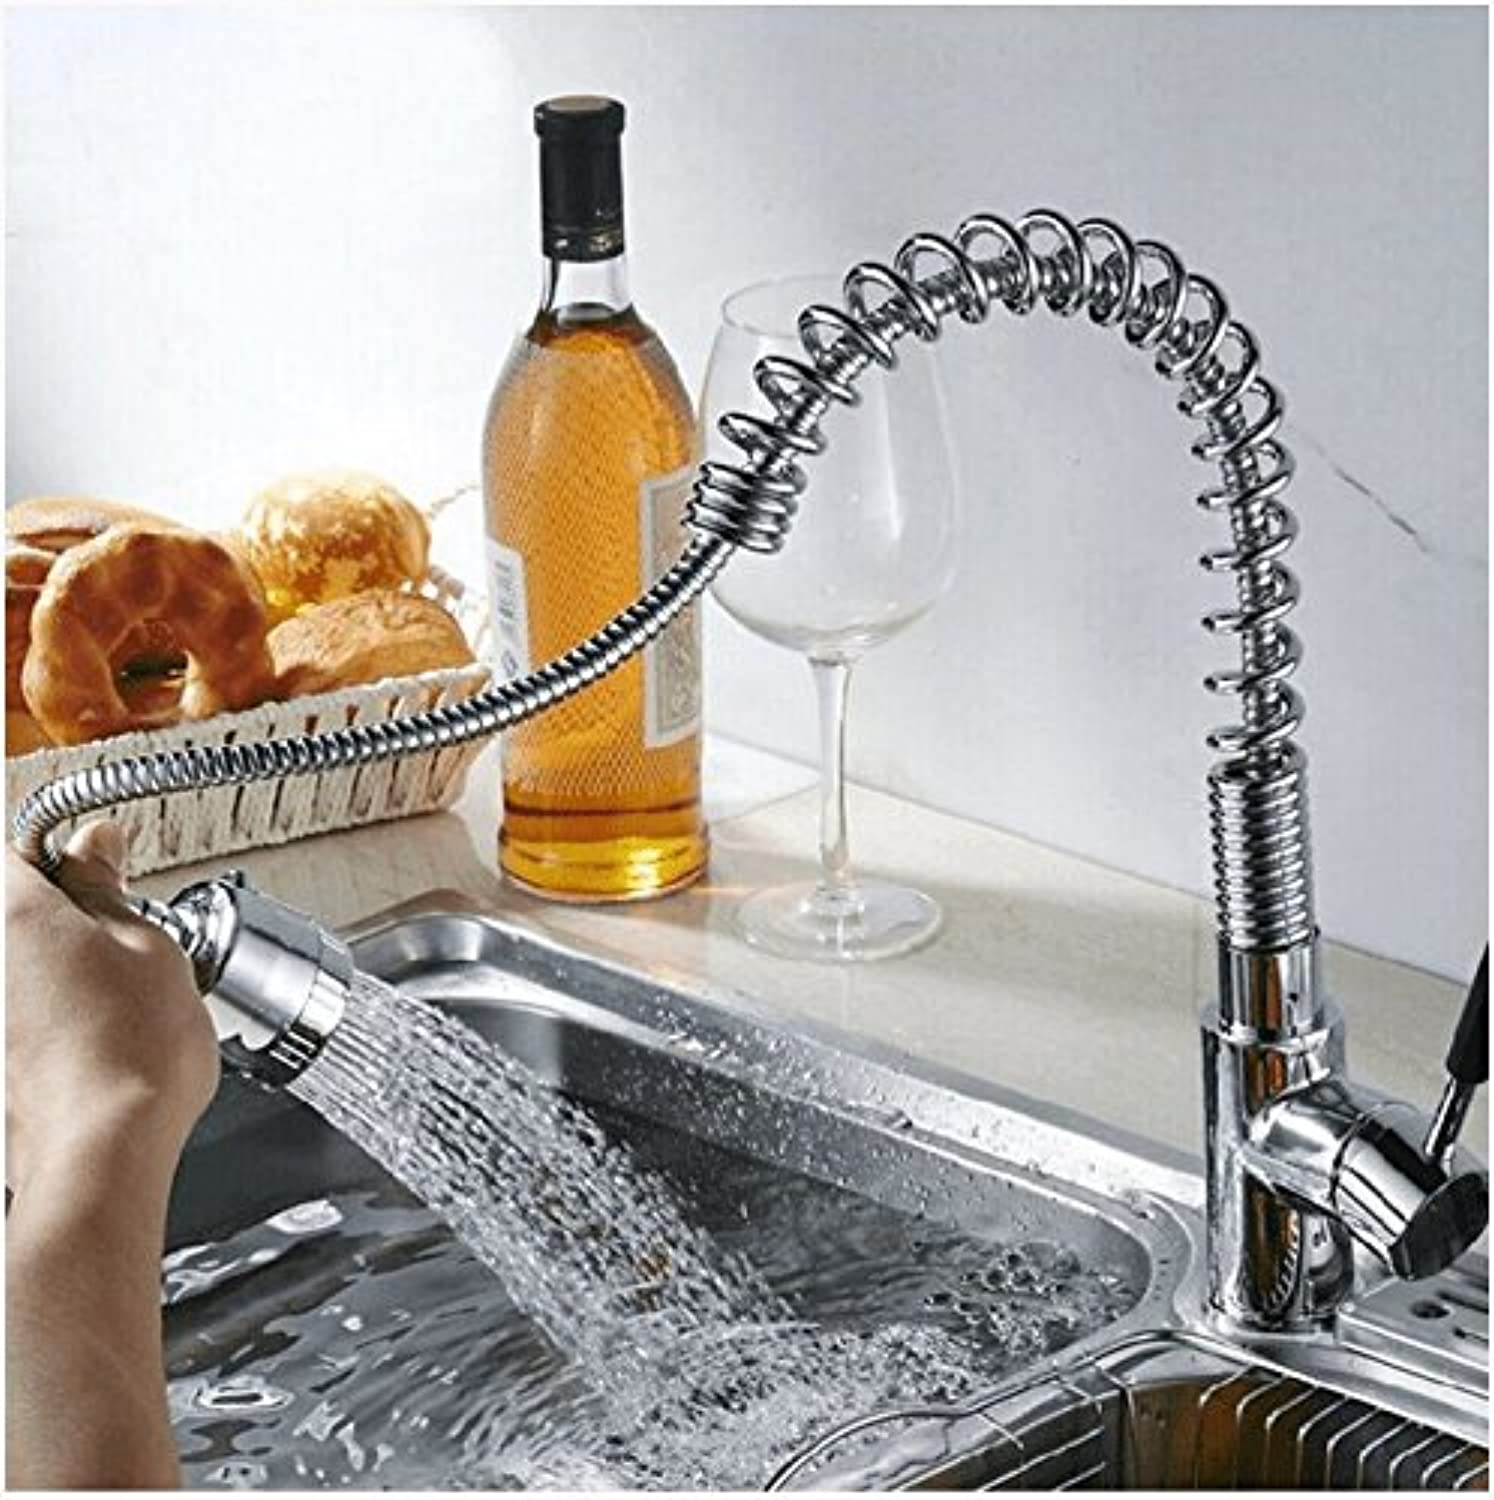 Commercial Single Lever Pull Down Kitchen Sink Faucet Brass Constructed Polished All-Copper Multi-Function Spring Faucet, Single-Unit Kitchen Pull-Out Faucet, Pull-Out Spring Kitchen Faucet